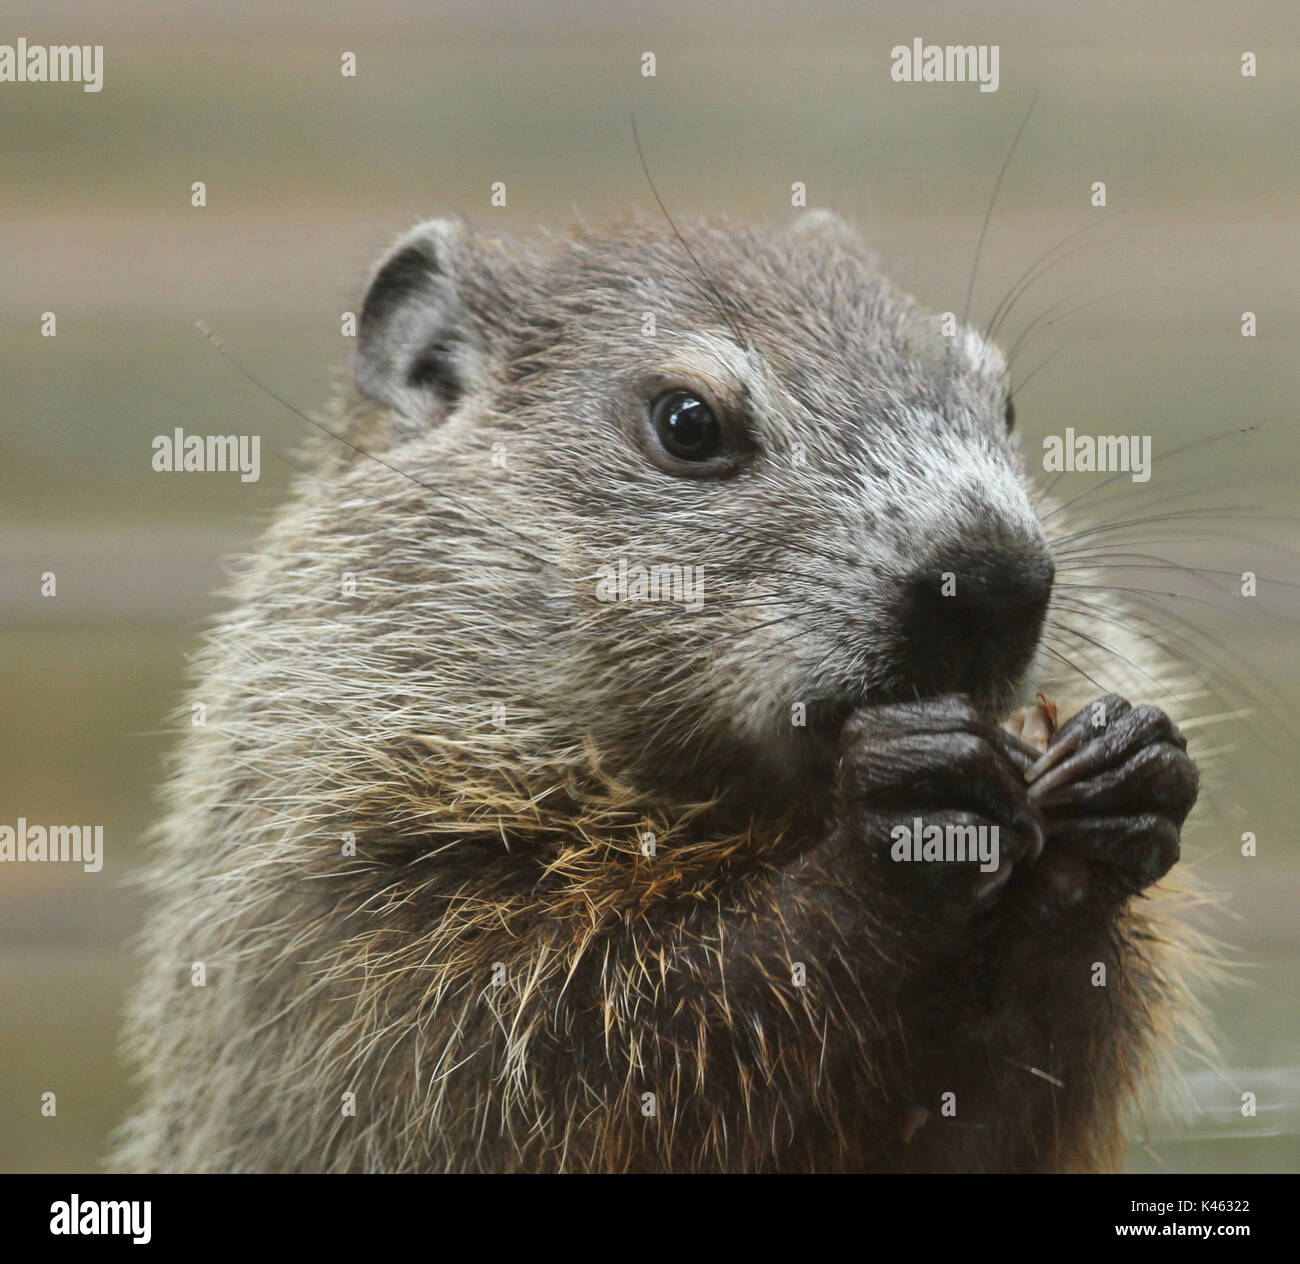 Close-up of an upright juvenile groundhog (Marmota monax) in summer eating a nut clutched in its paws - Stock Image